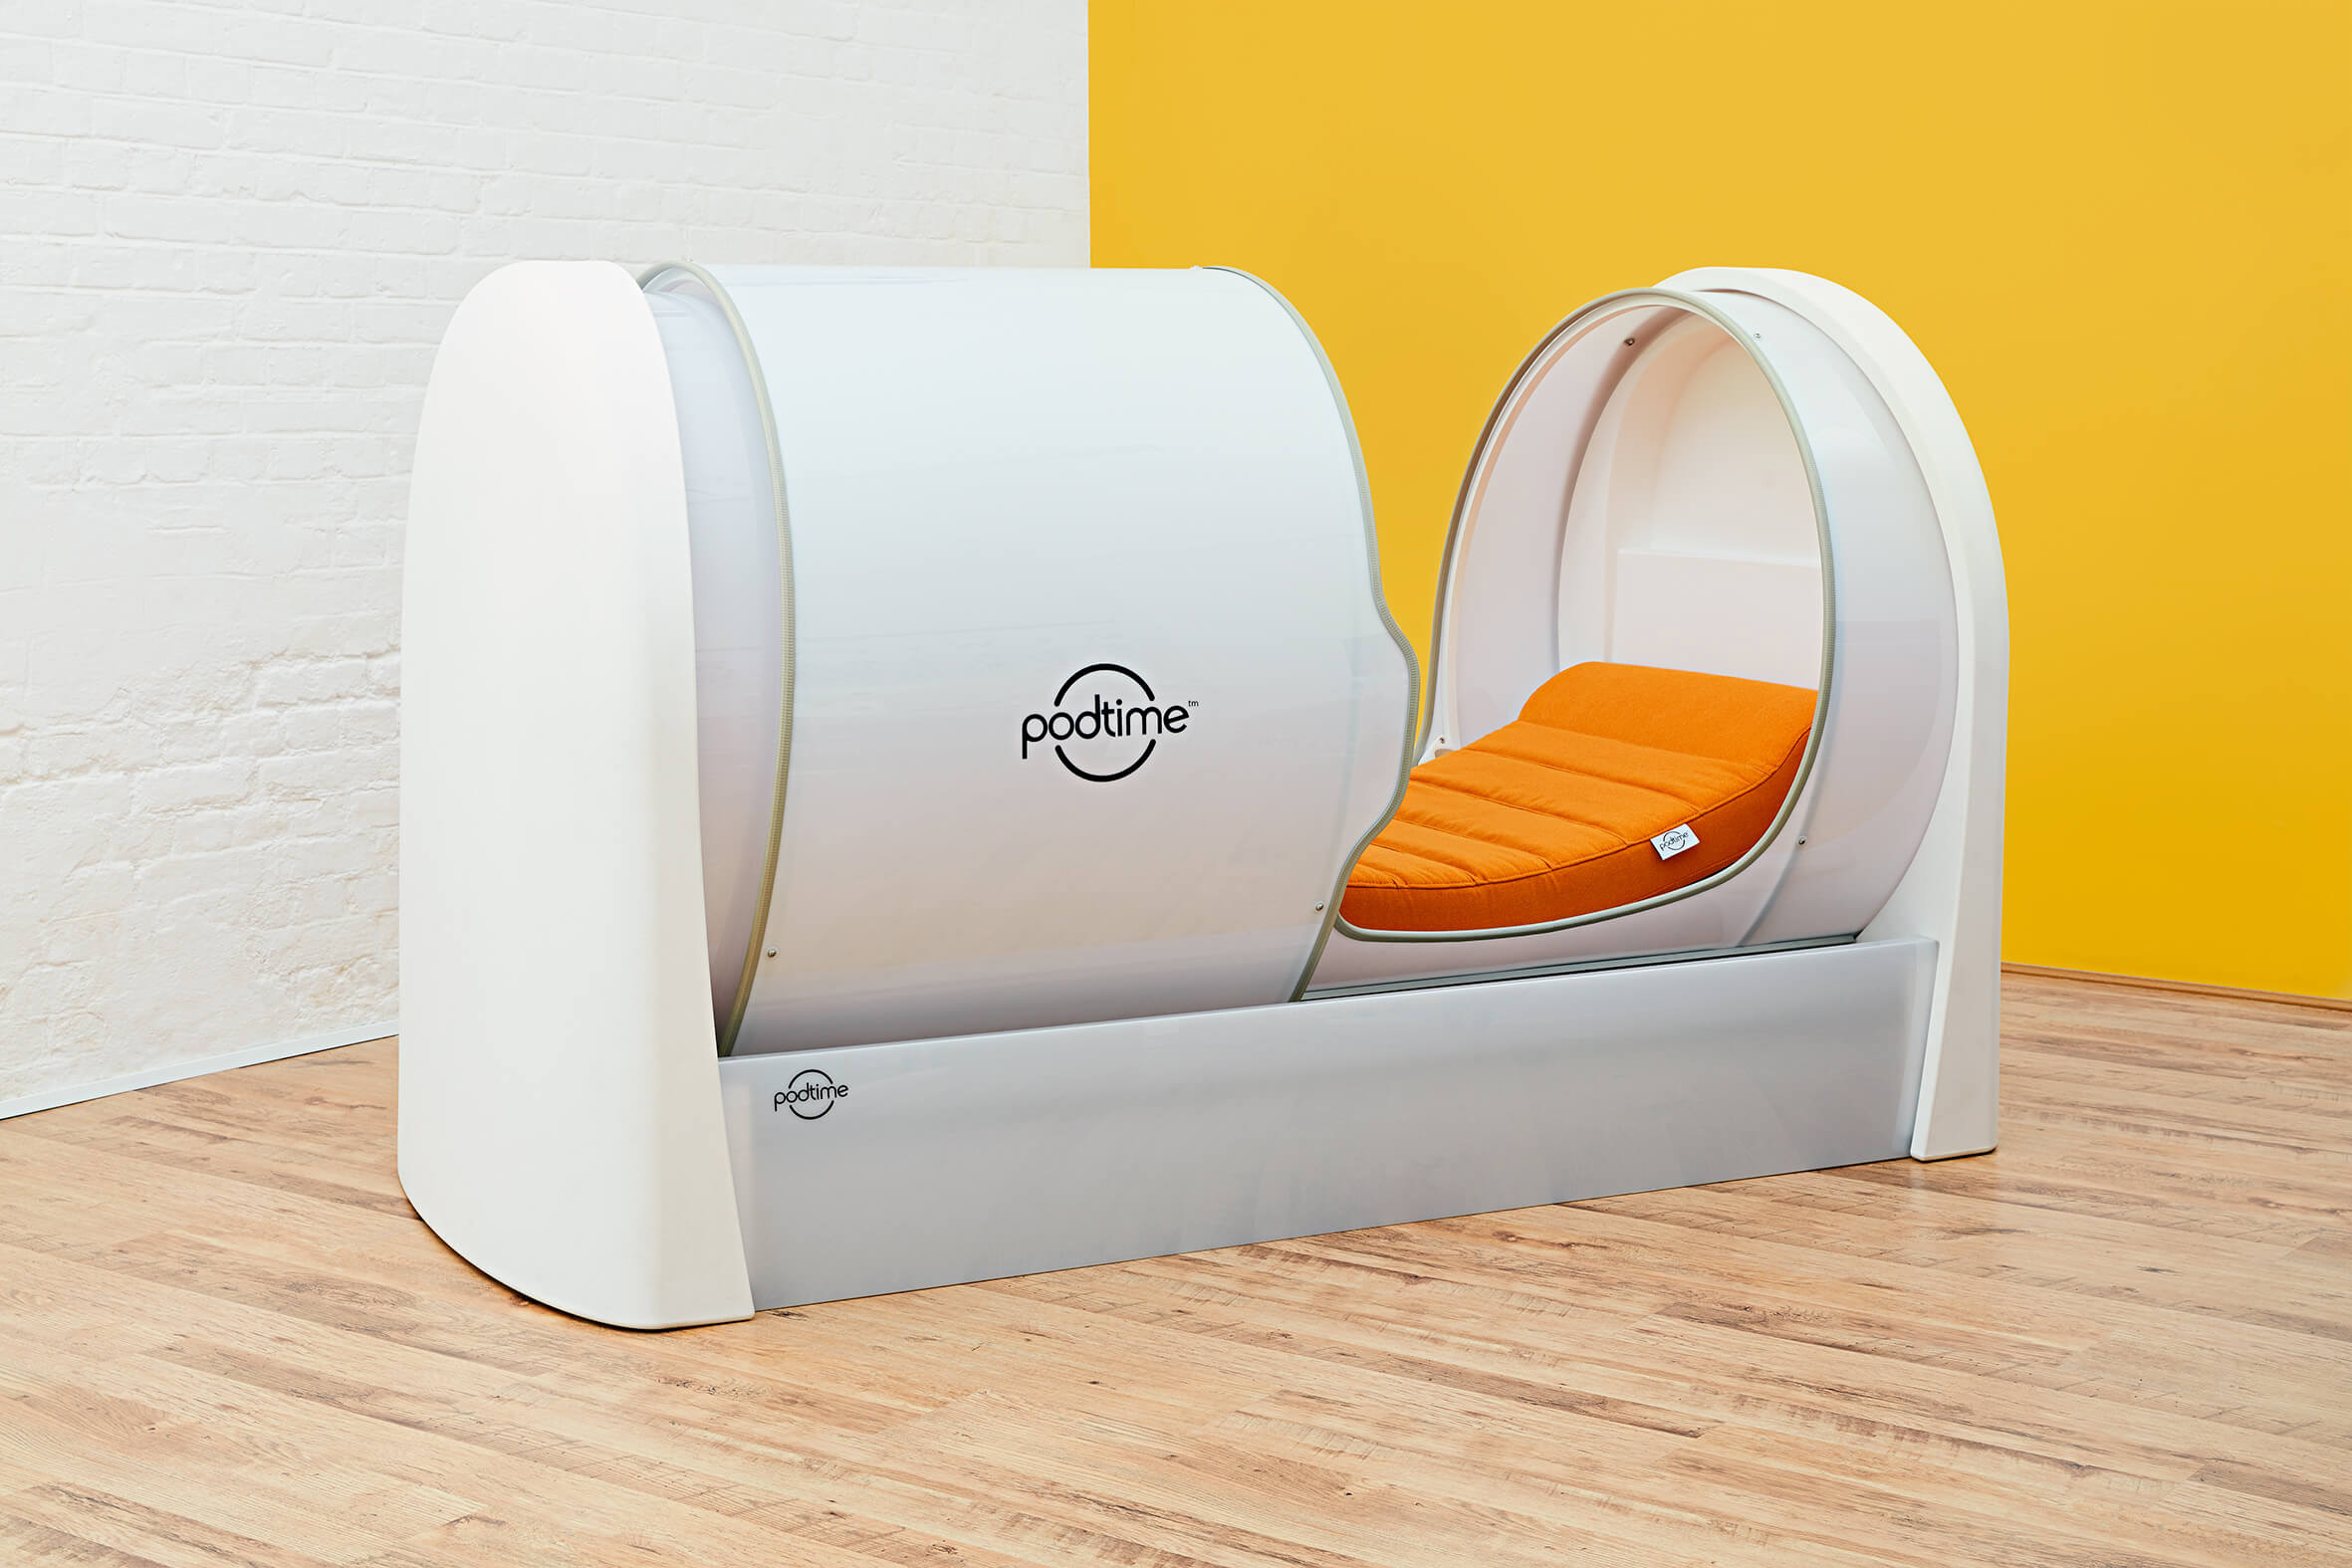 Sleep Pod from Podtime